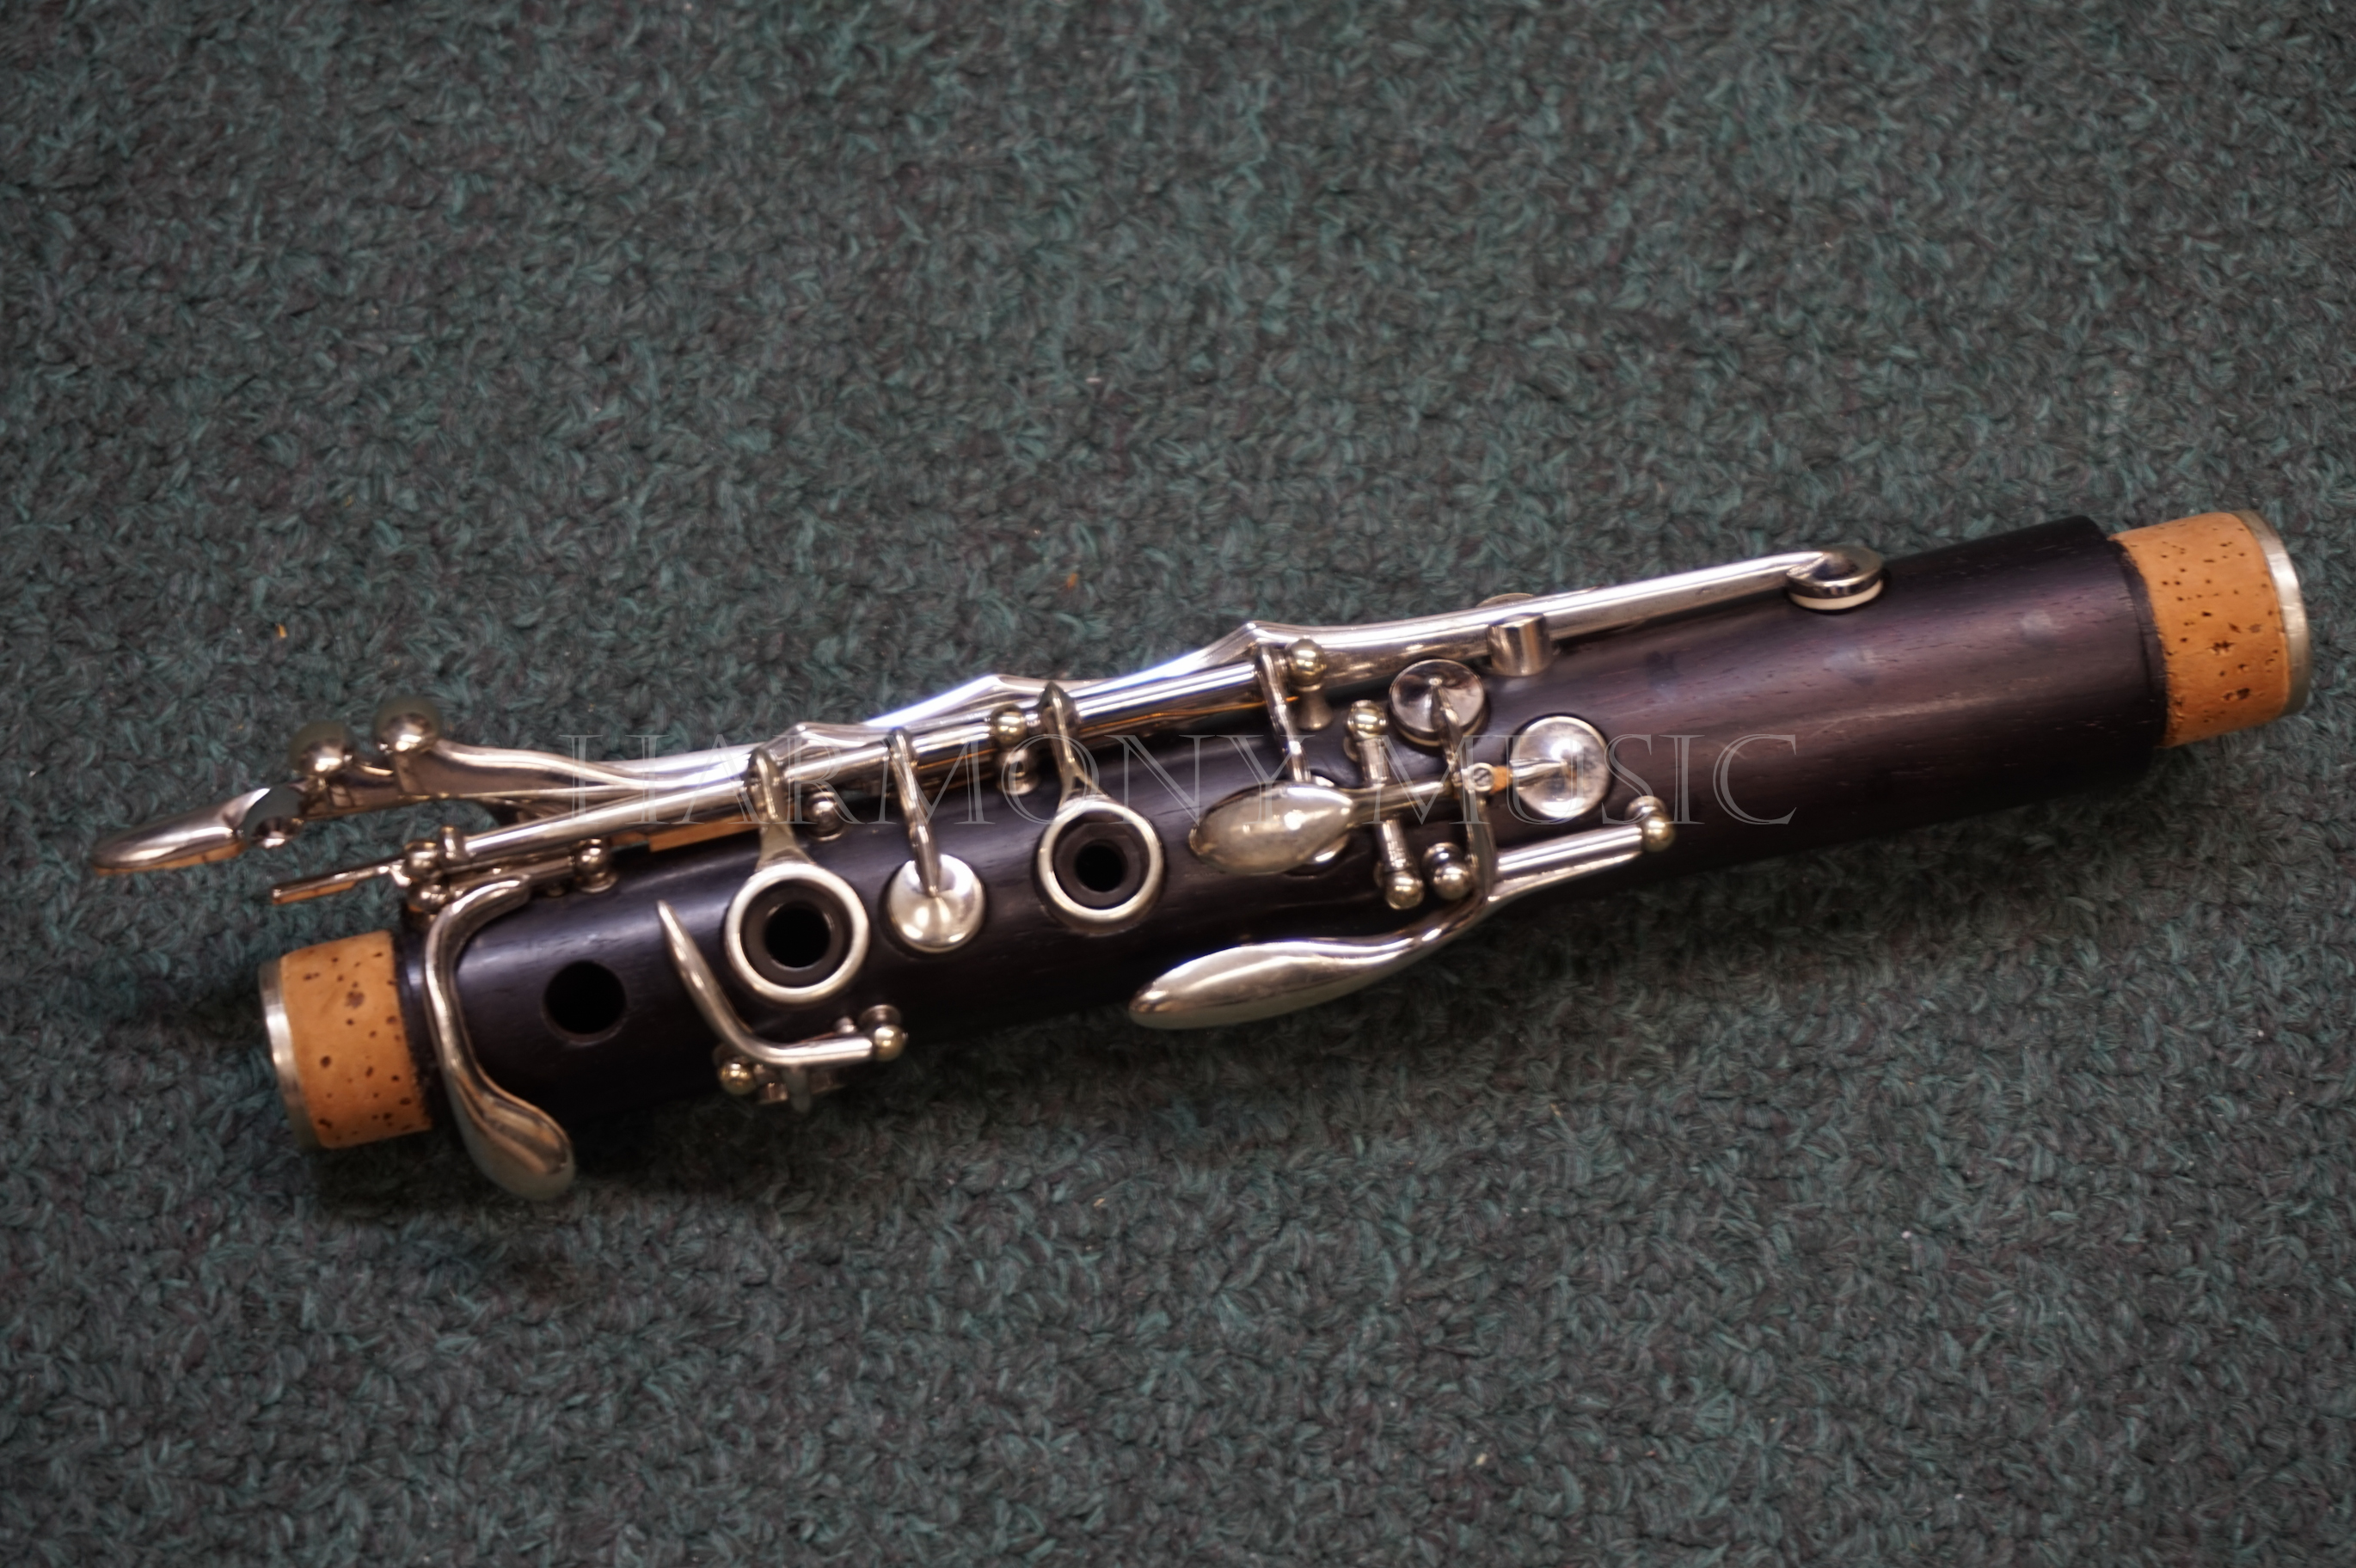 lafleur wood clarinet used b flat great condition pre sale overhauled ebay. Black Bedroom Furniture Sets. Home Design Ideas